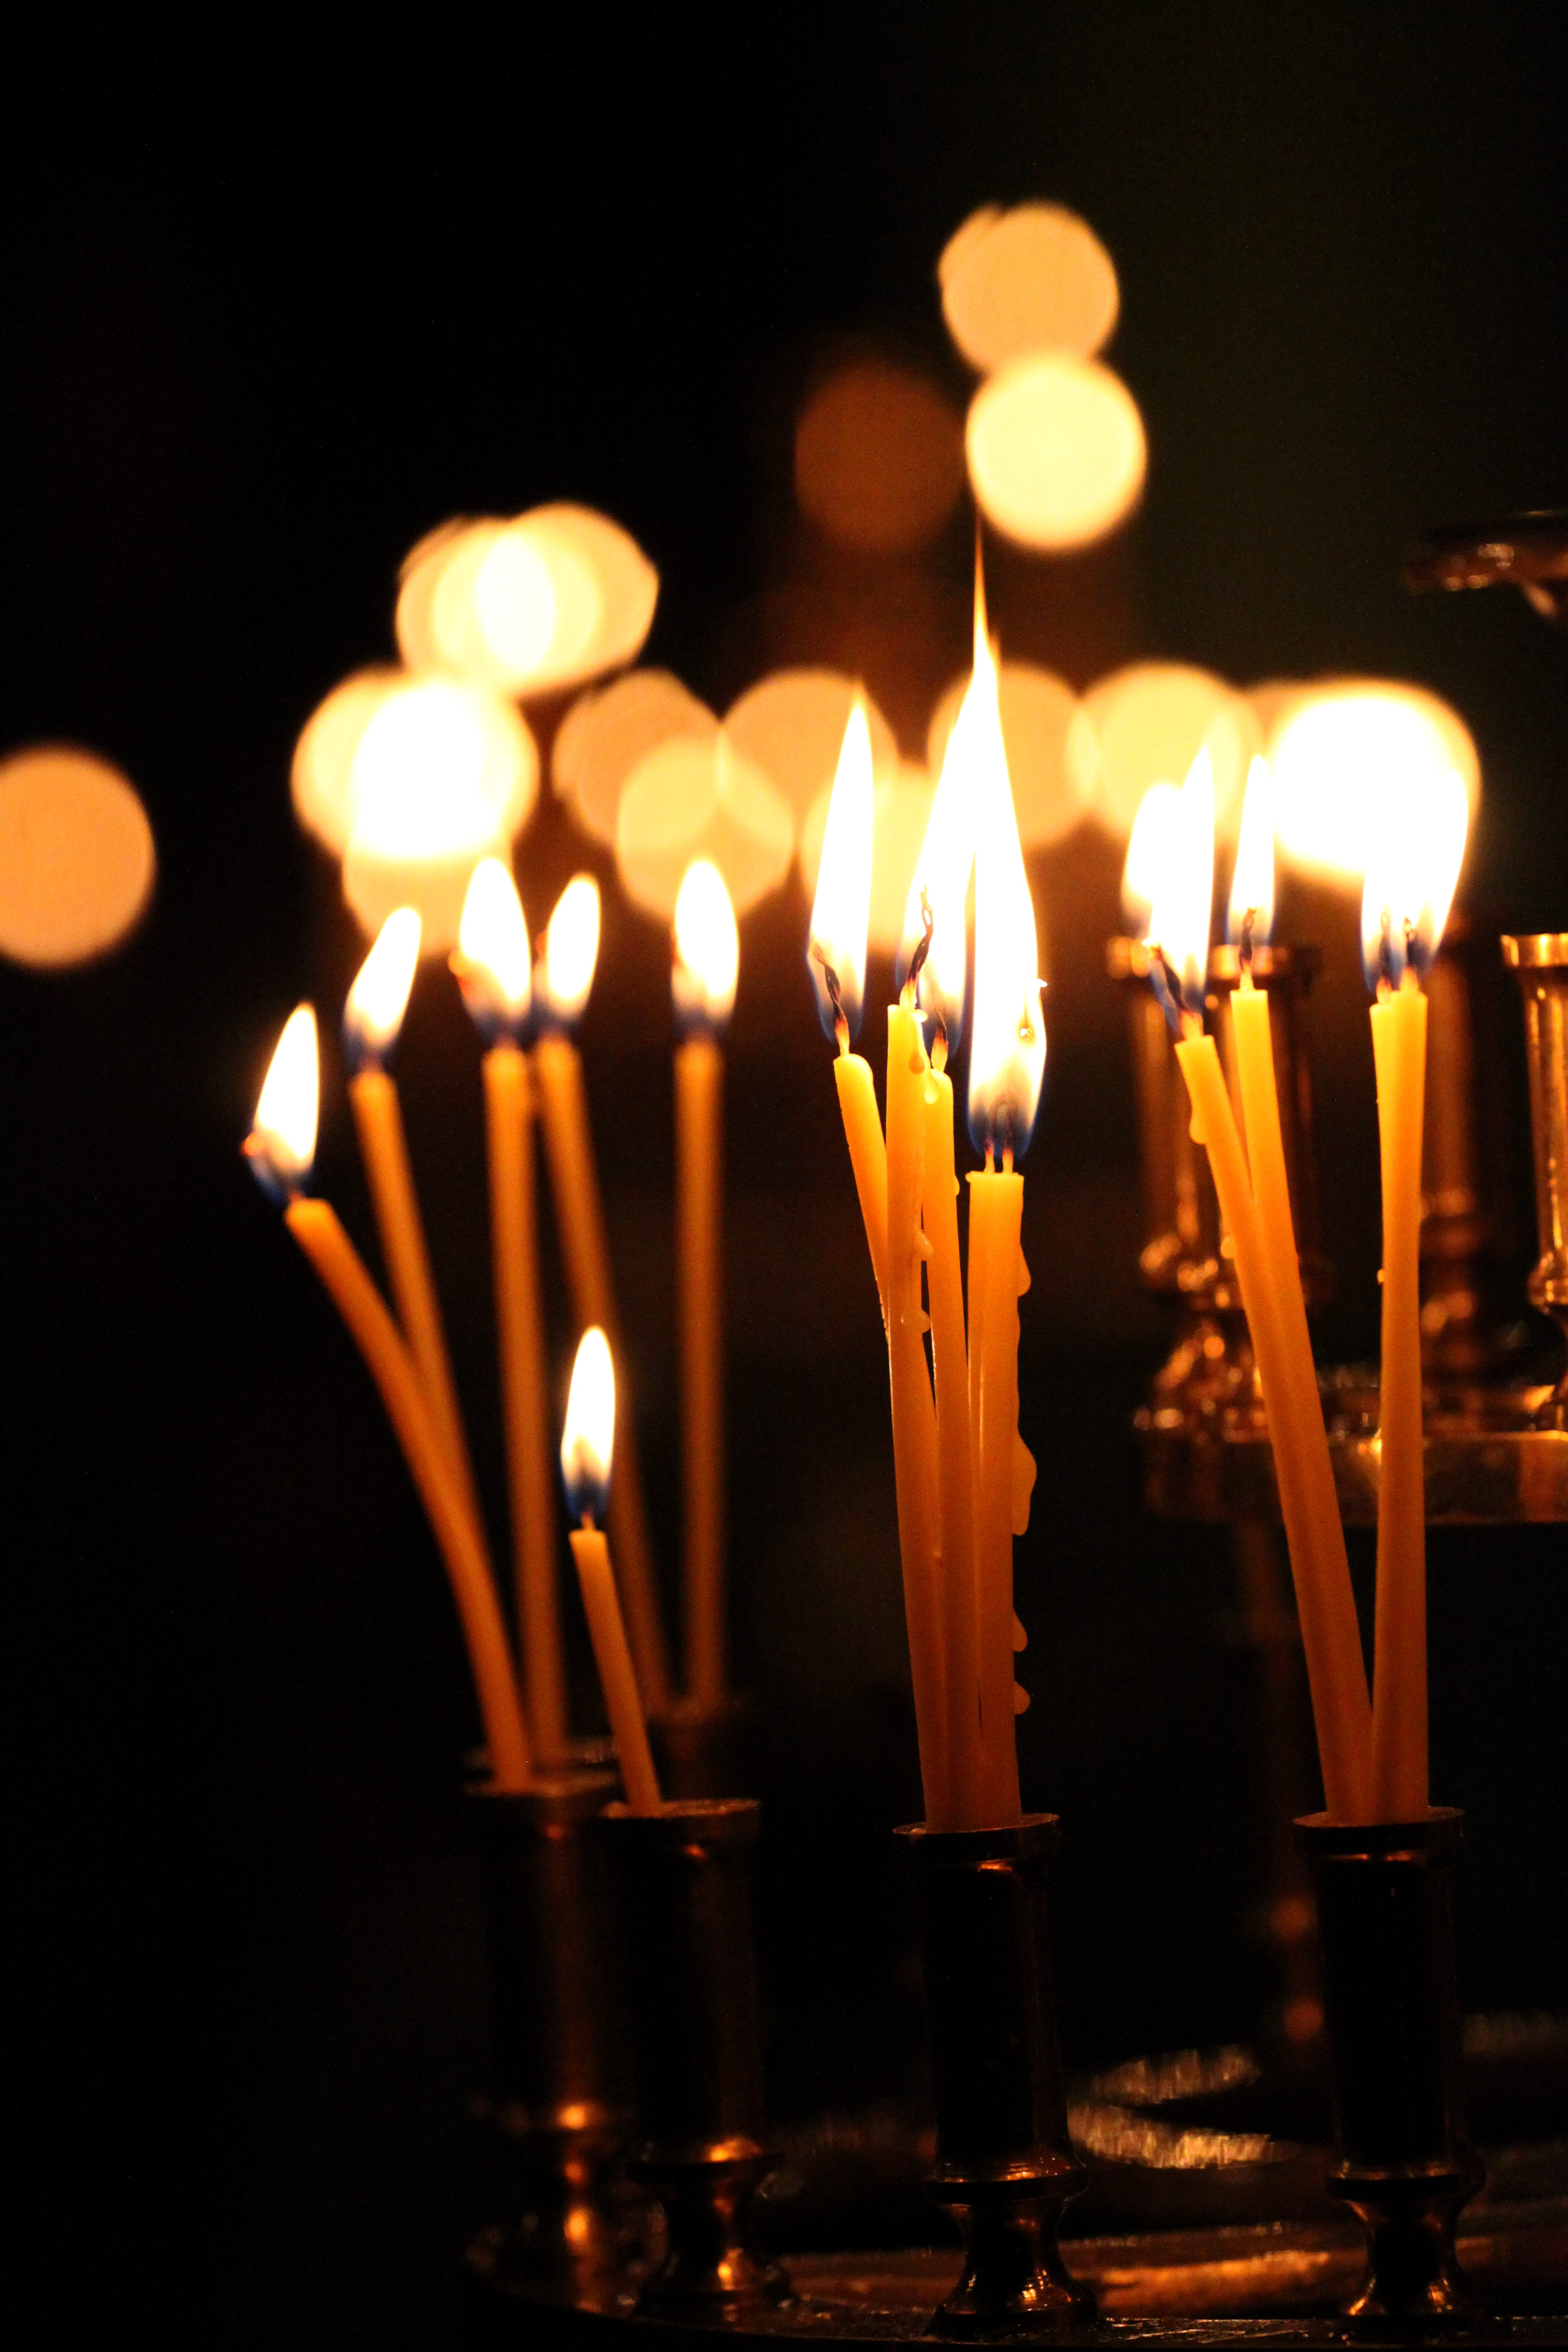 File:Candles in ortodox church.jpg